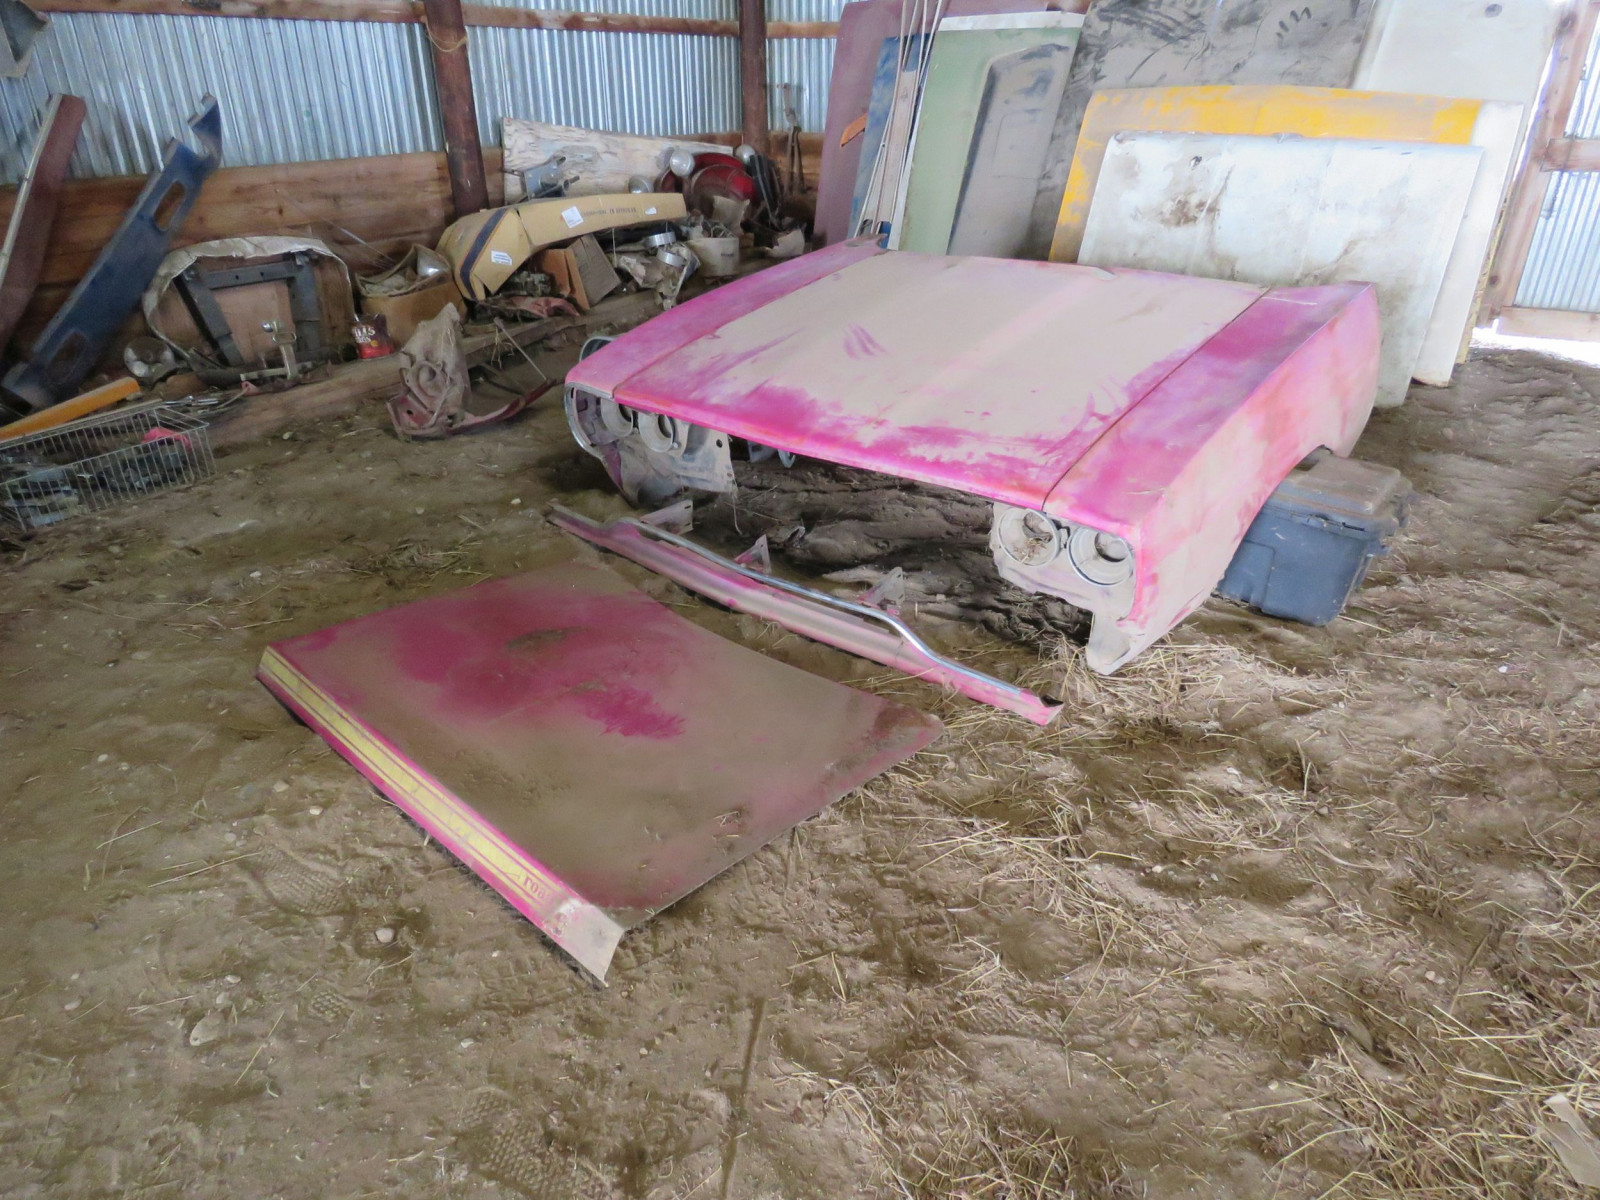 Front Clip for 1970 Plymouth Road runner in Original Pink with Decklid - Image 1